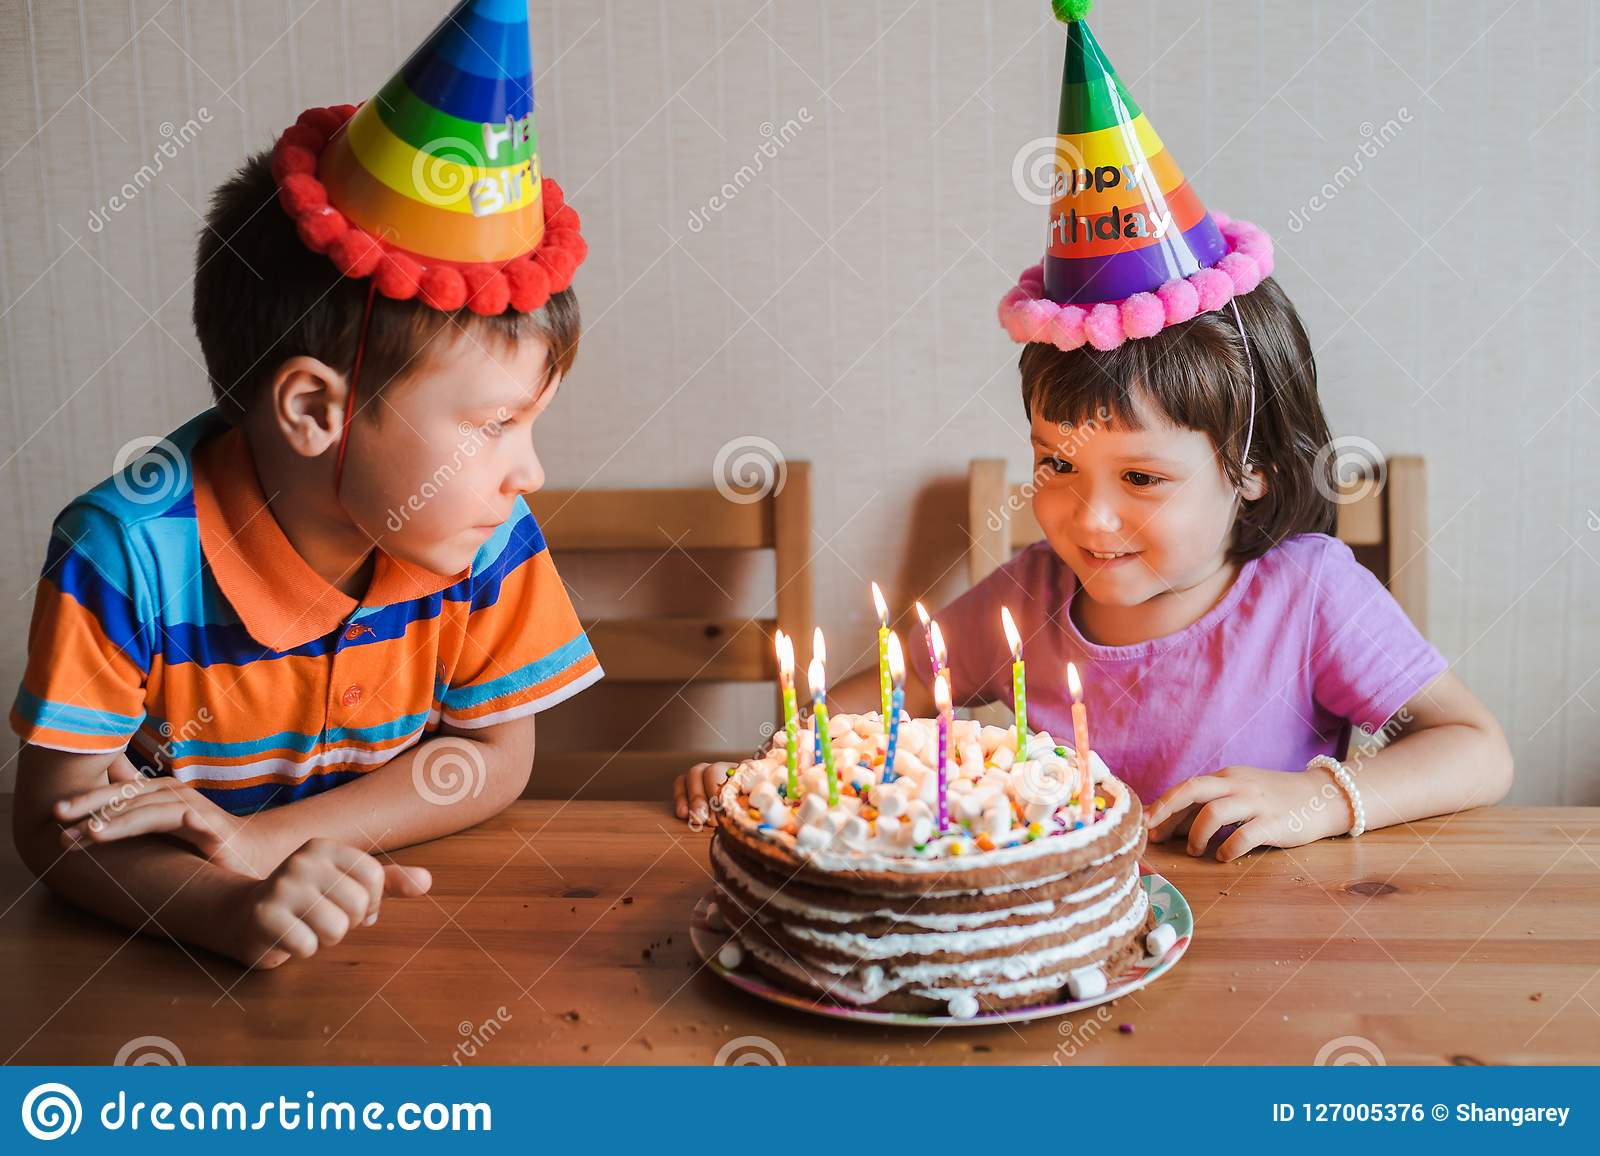 Wondrous Brother And Sister Eating A Birthday Cake With Candles Blowing Out Funny Birthday Cards Online Alyptdamsfinfo